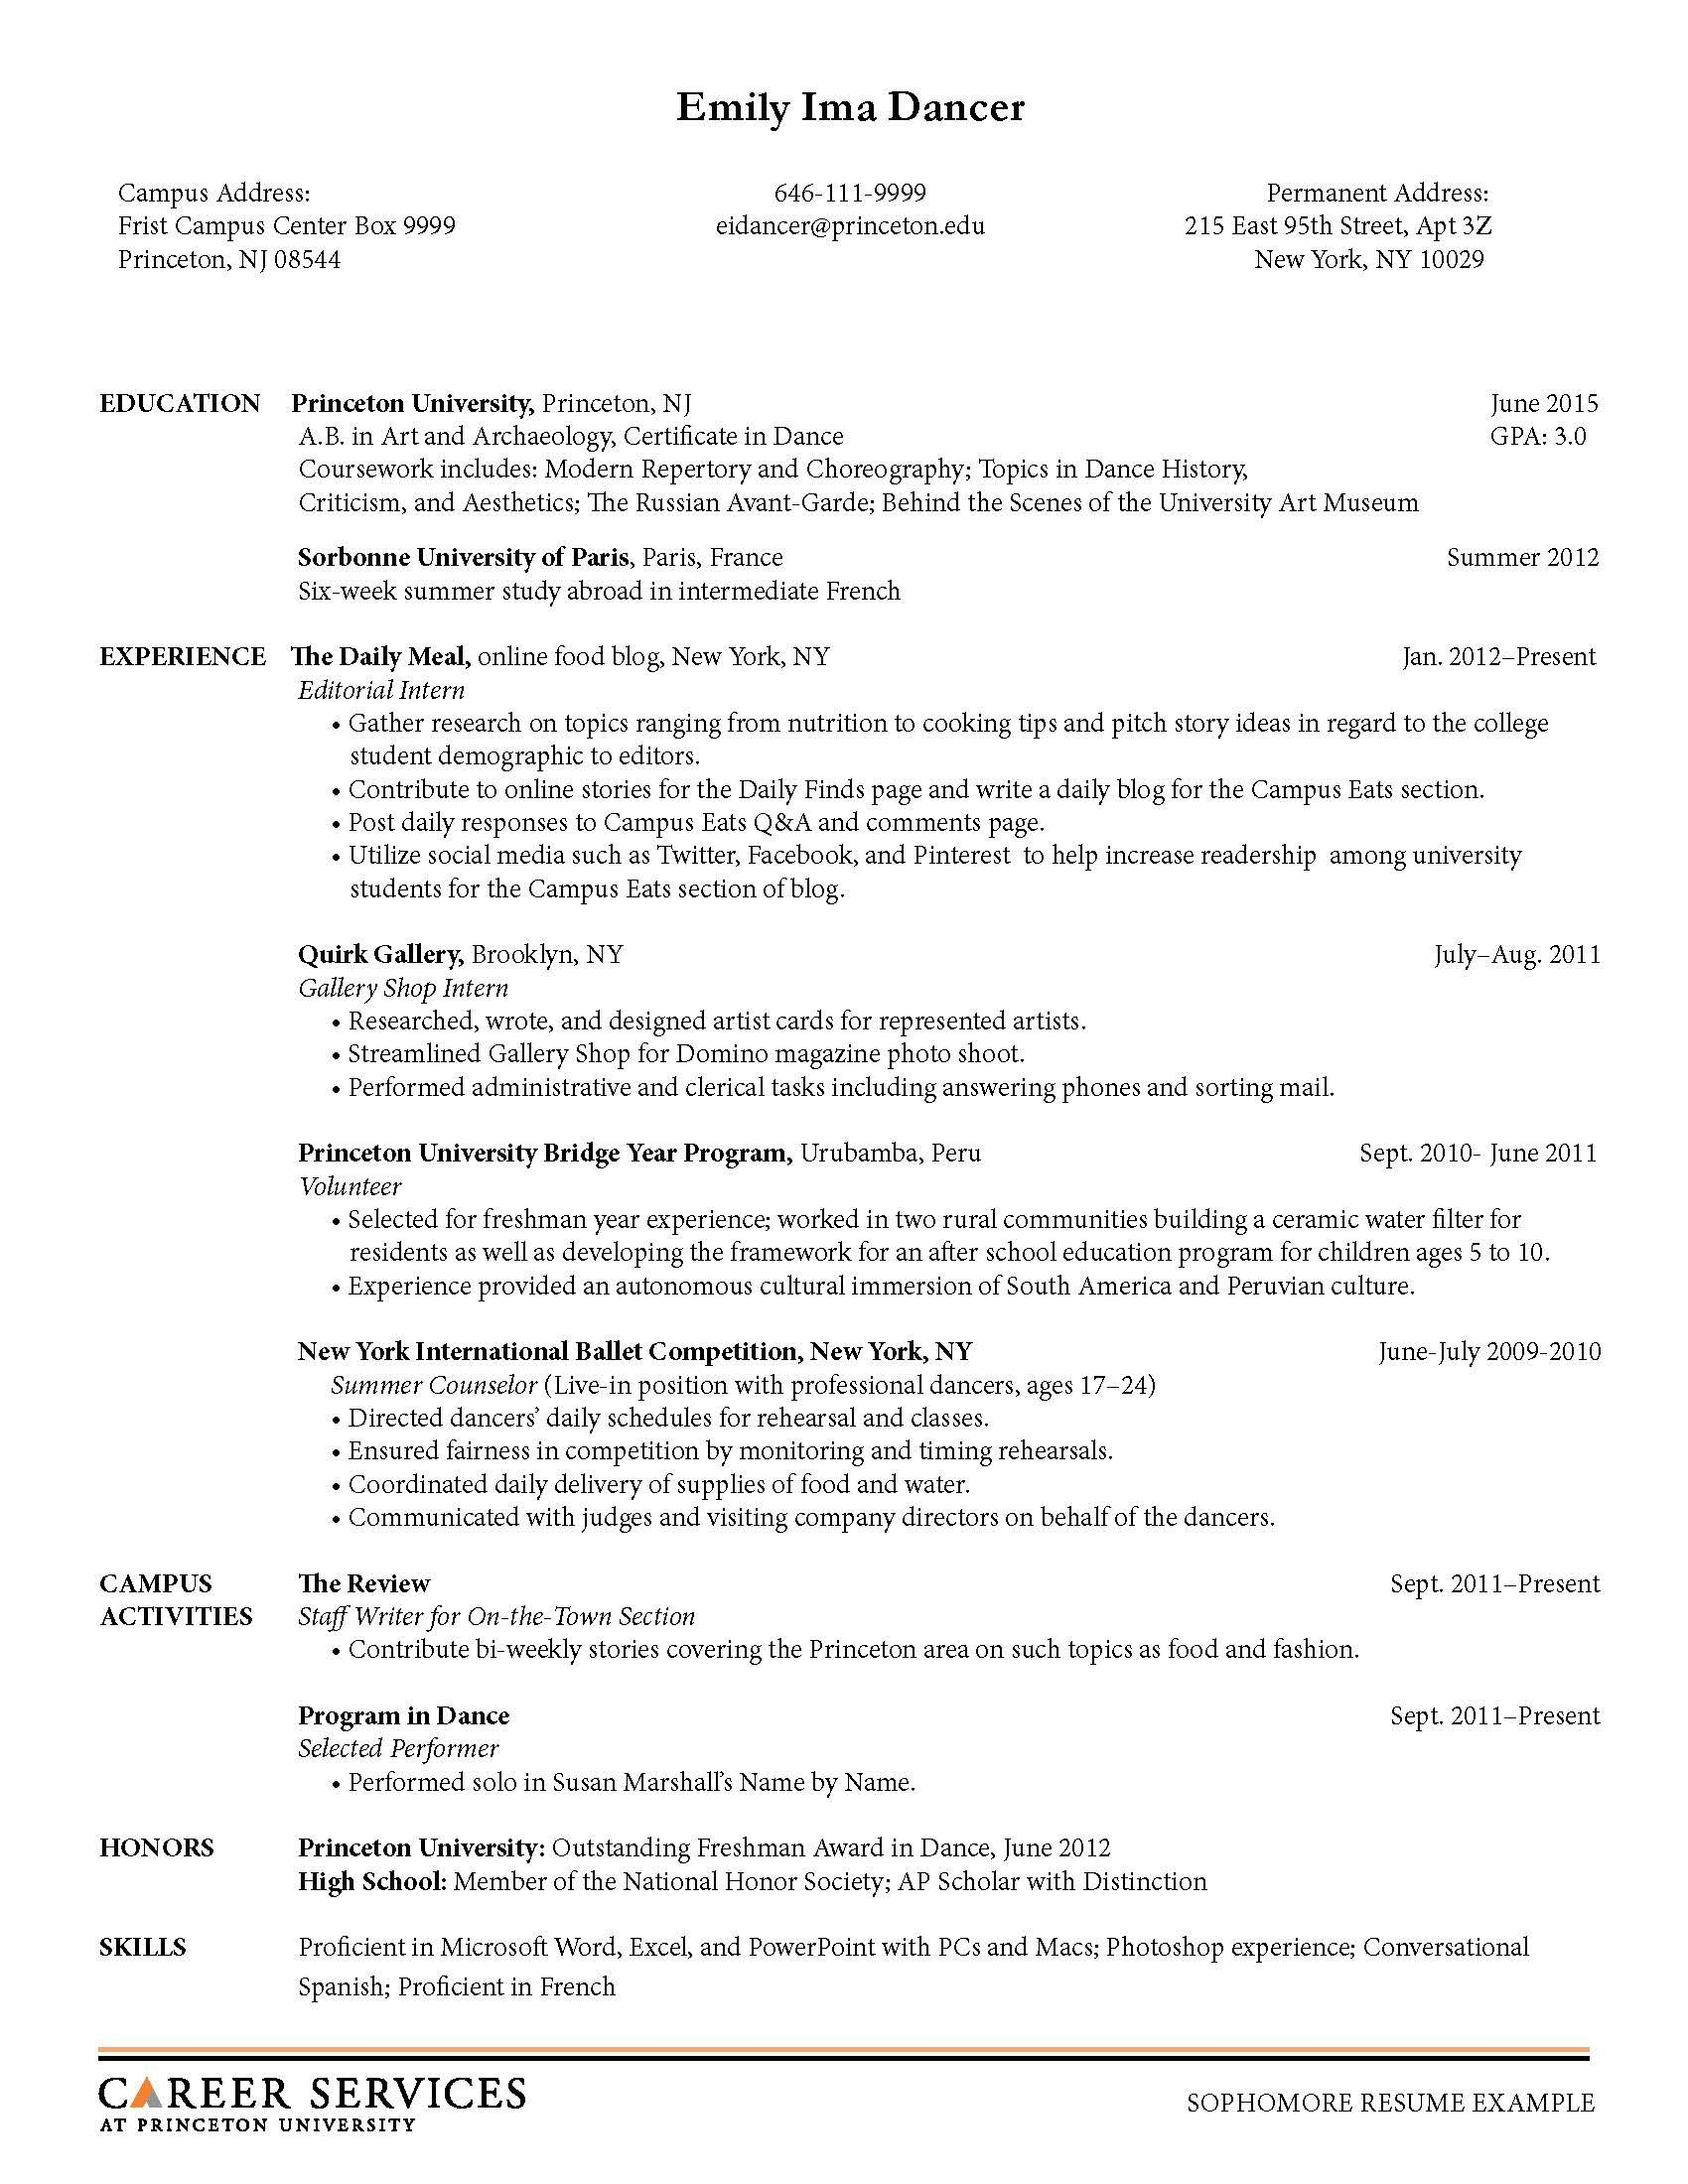 Picnictoimpeachus  Splendid Sample Resume Resume And Career On Pinterest With Excellent Submit Your Resume Besides Resume For A Cook Furthermore How To Start A Resume Writing Business With Extraordinary Resume Professional Skills Also Absolutely Free Resume In Addition Great Resumes Examples And Word Template For Resume As Well As Great Resume Template Additionally Blank Resume To Fill Out From Pinterestcom With Picnictoimpeachus  Excellent Sample Resume Resume And Career On Pinterest With Extraordinary Submit Your Resume Besides Resume For A Cook Furthermore How To Start A Resume Writing Business And Splendid Resume Professional Skills Also Absolutely Free Resume In Addition Great Resumes Examples From Pinterestcom